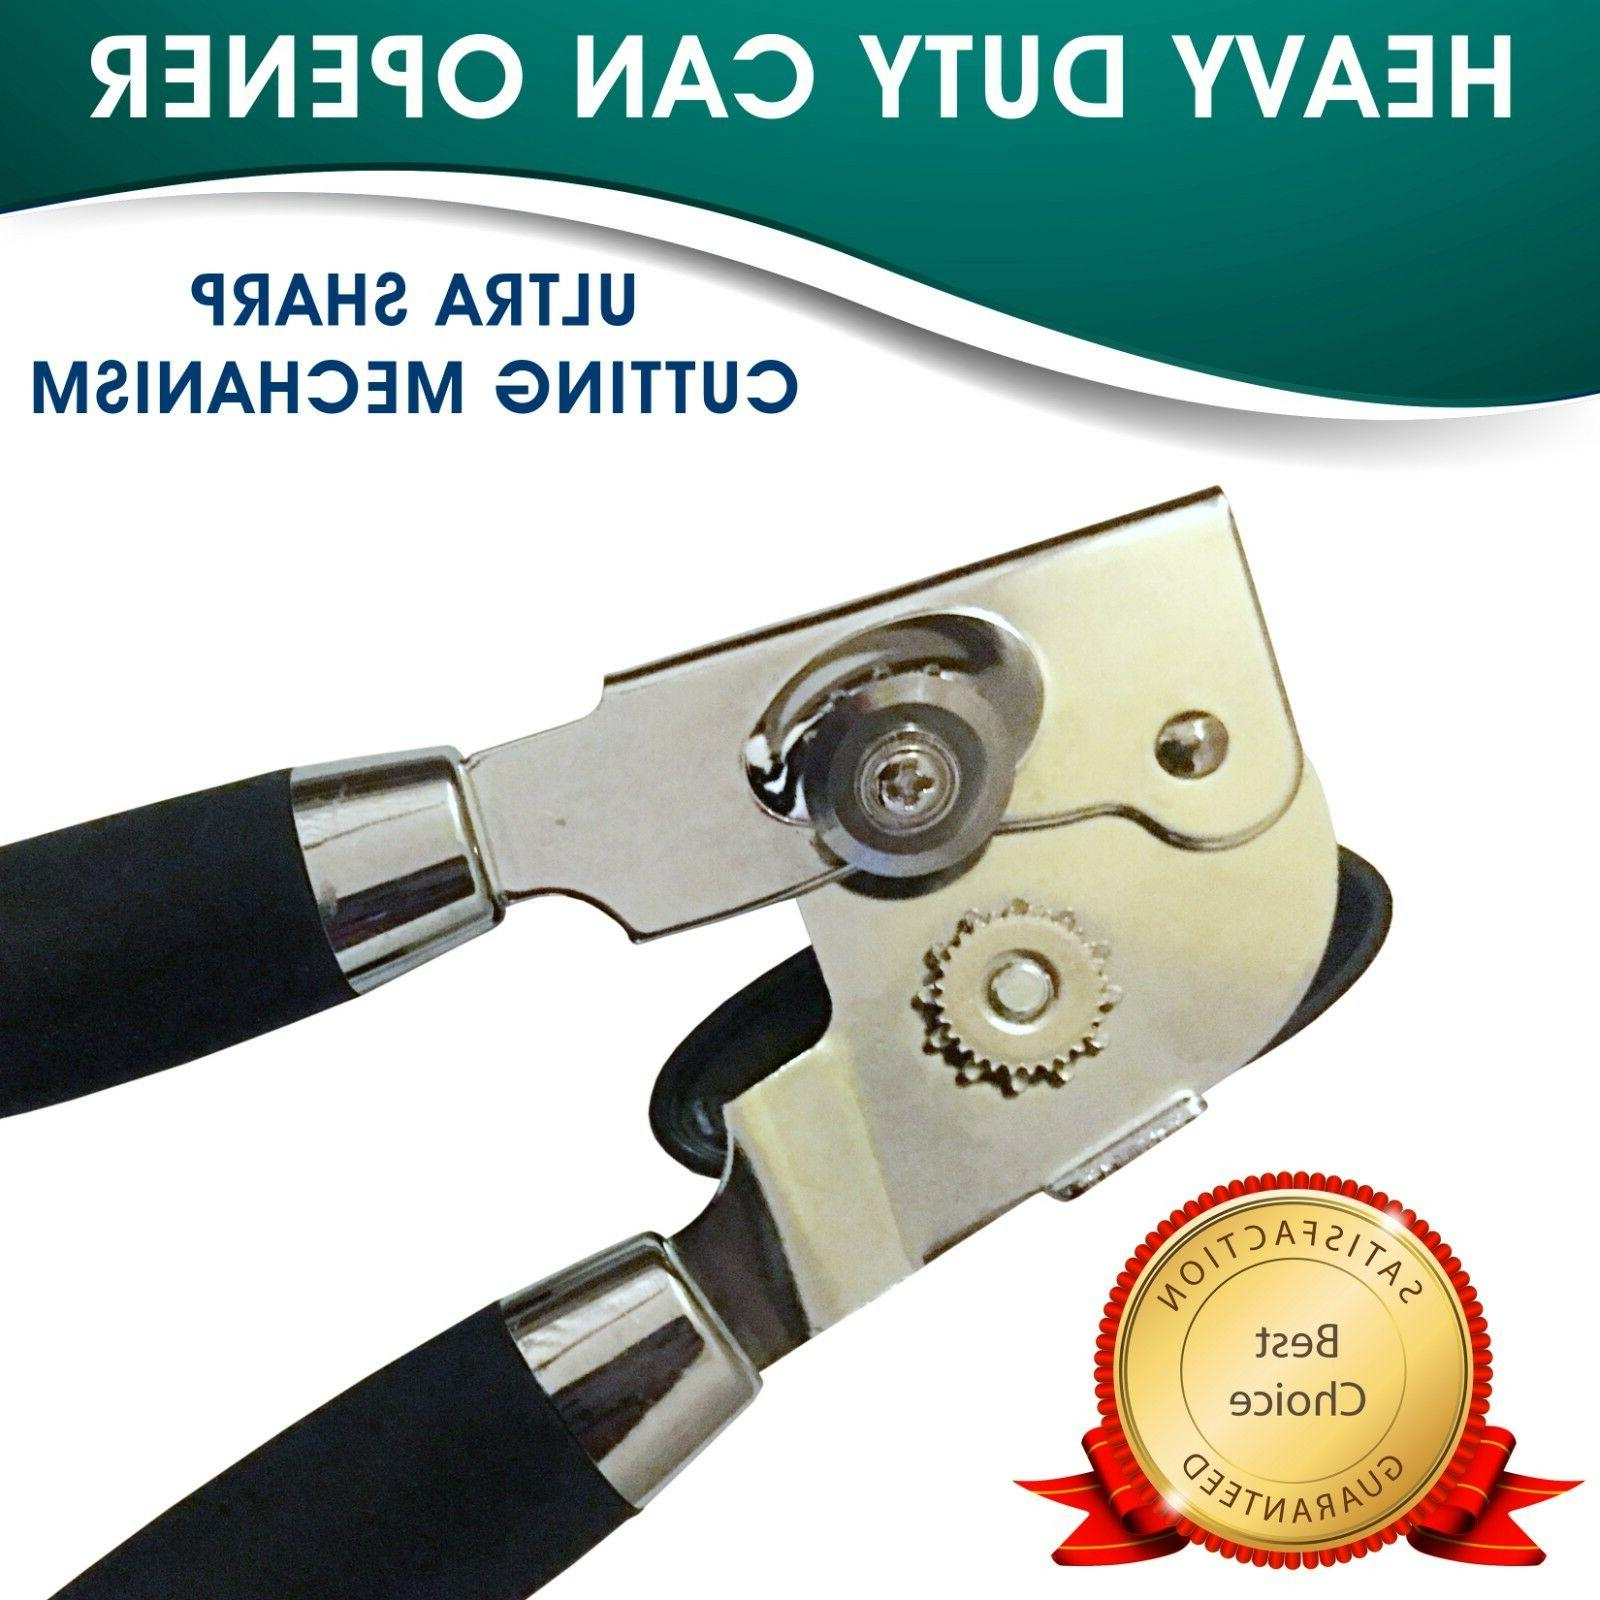 Kennai Best Can Opener Professional Heavy Duty. Smooth Edges Stainless St...